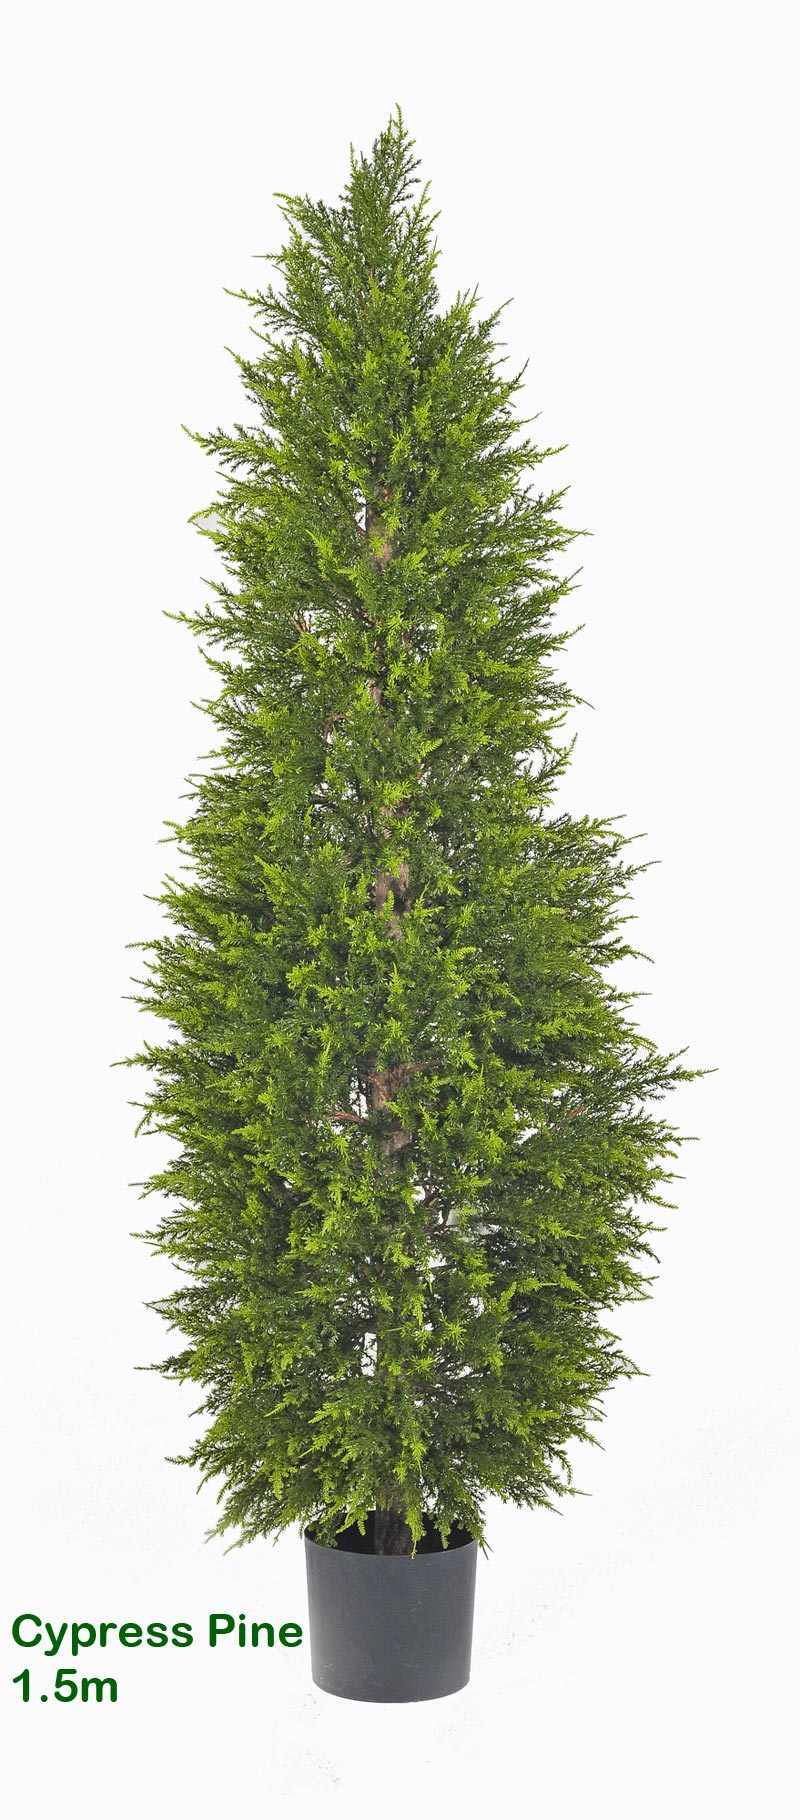 Articial Plants - Cypress Pine 1.5M